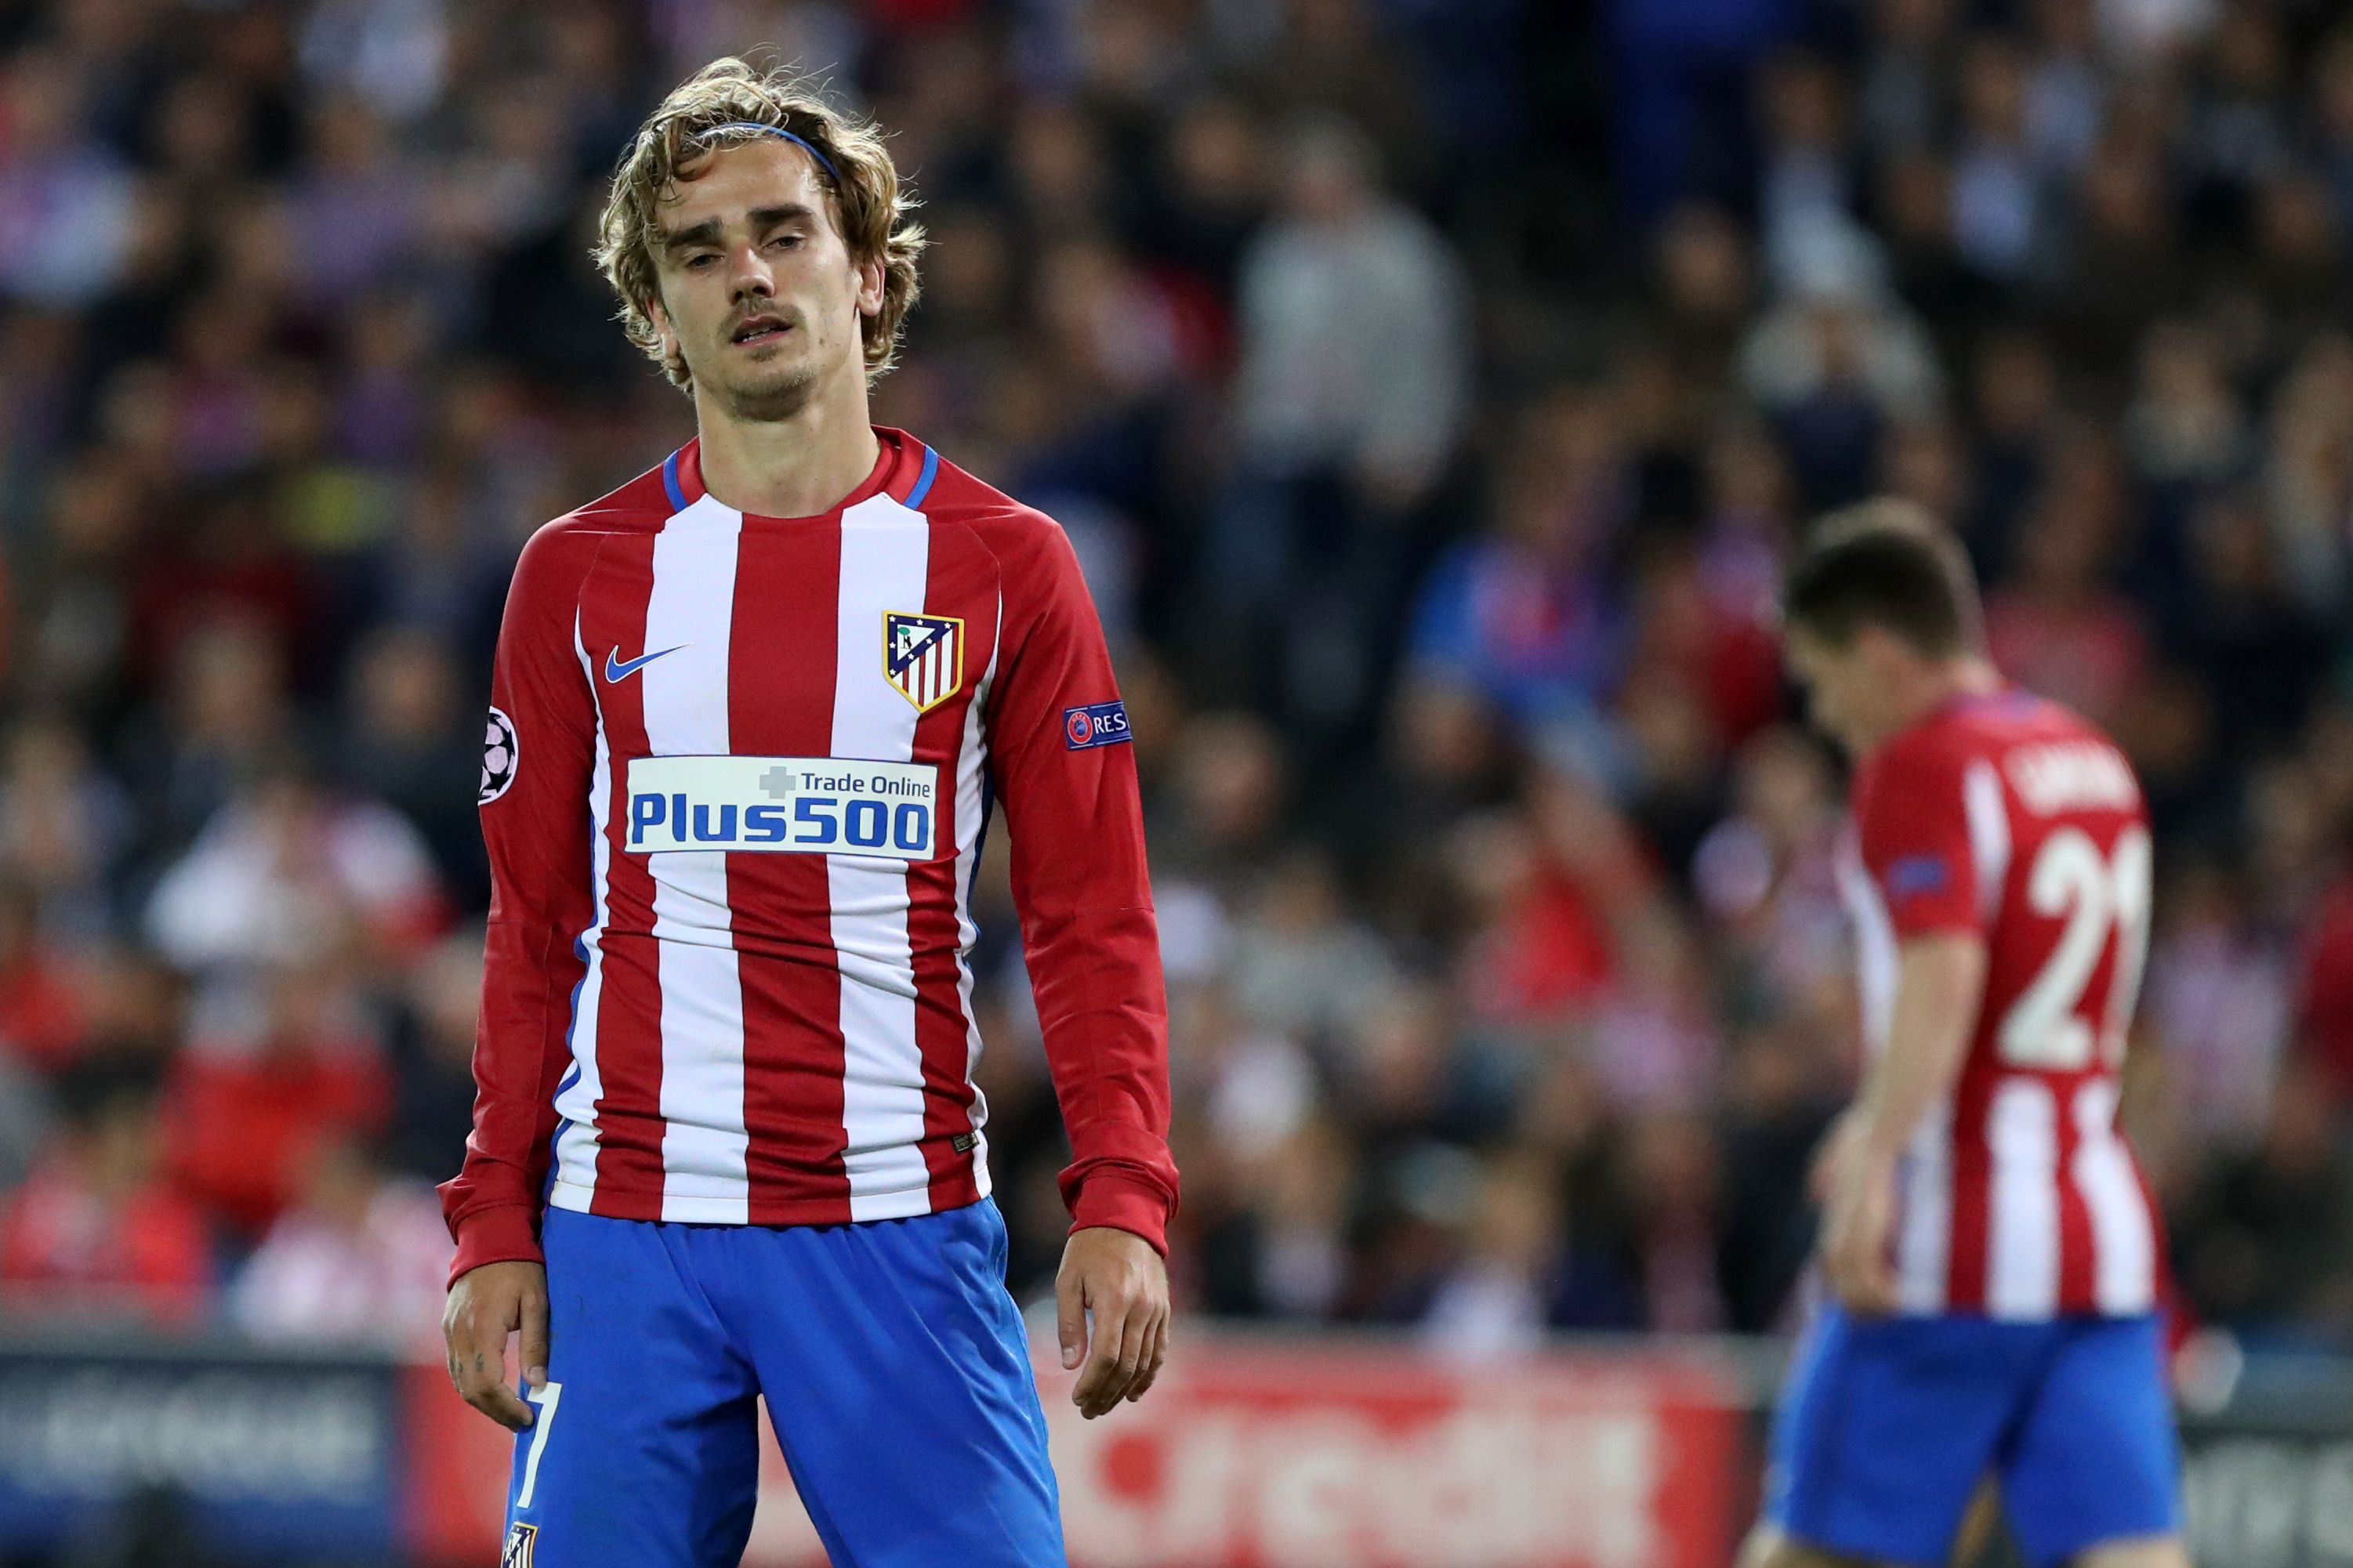 Atletico Madrid's French forward Antoine Griezmann stands on the field during the UEFA Champions League semifinal second leg football match Club Atletico de Madrid vs Real Madrid CF at the Vicente Calderon stadium in Madrid, on May 10, 2017. / AFP PHOTO / CESAR MANSO (Photo credit should read CESAR MANSO/AFP/Getty Images)